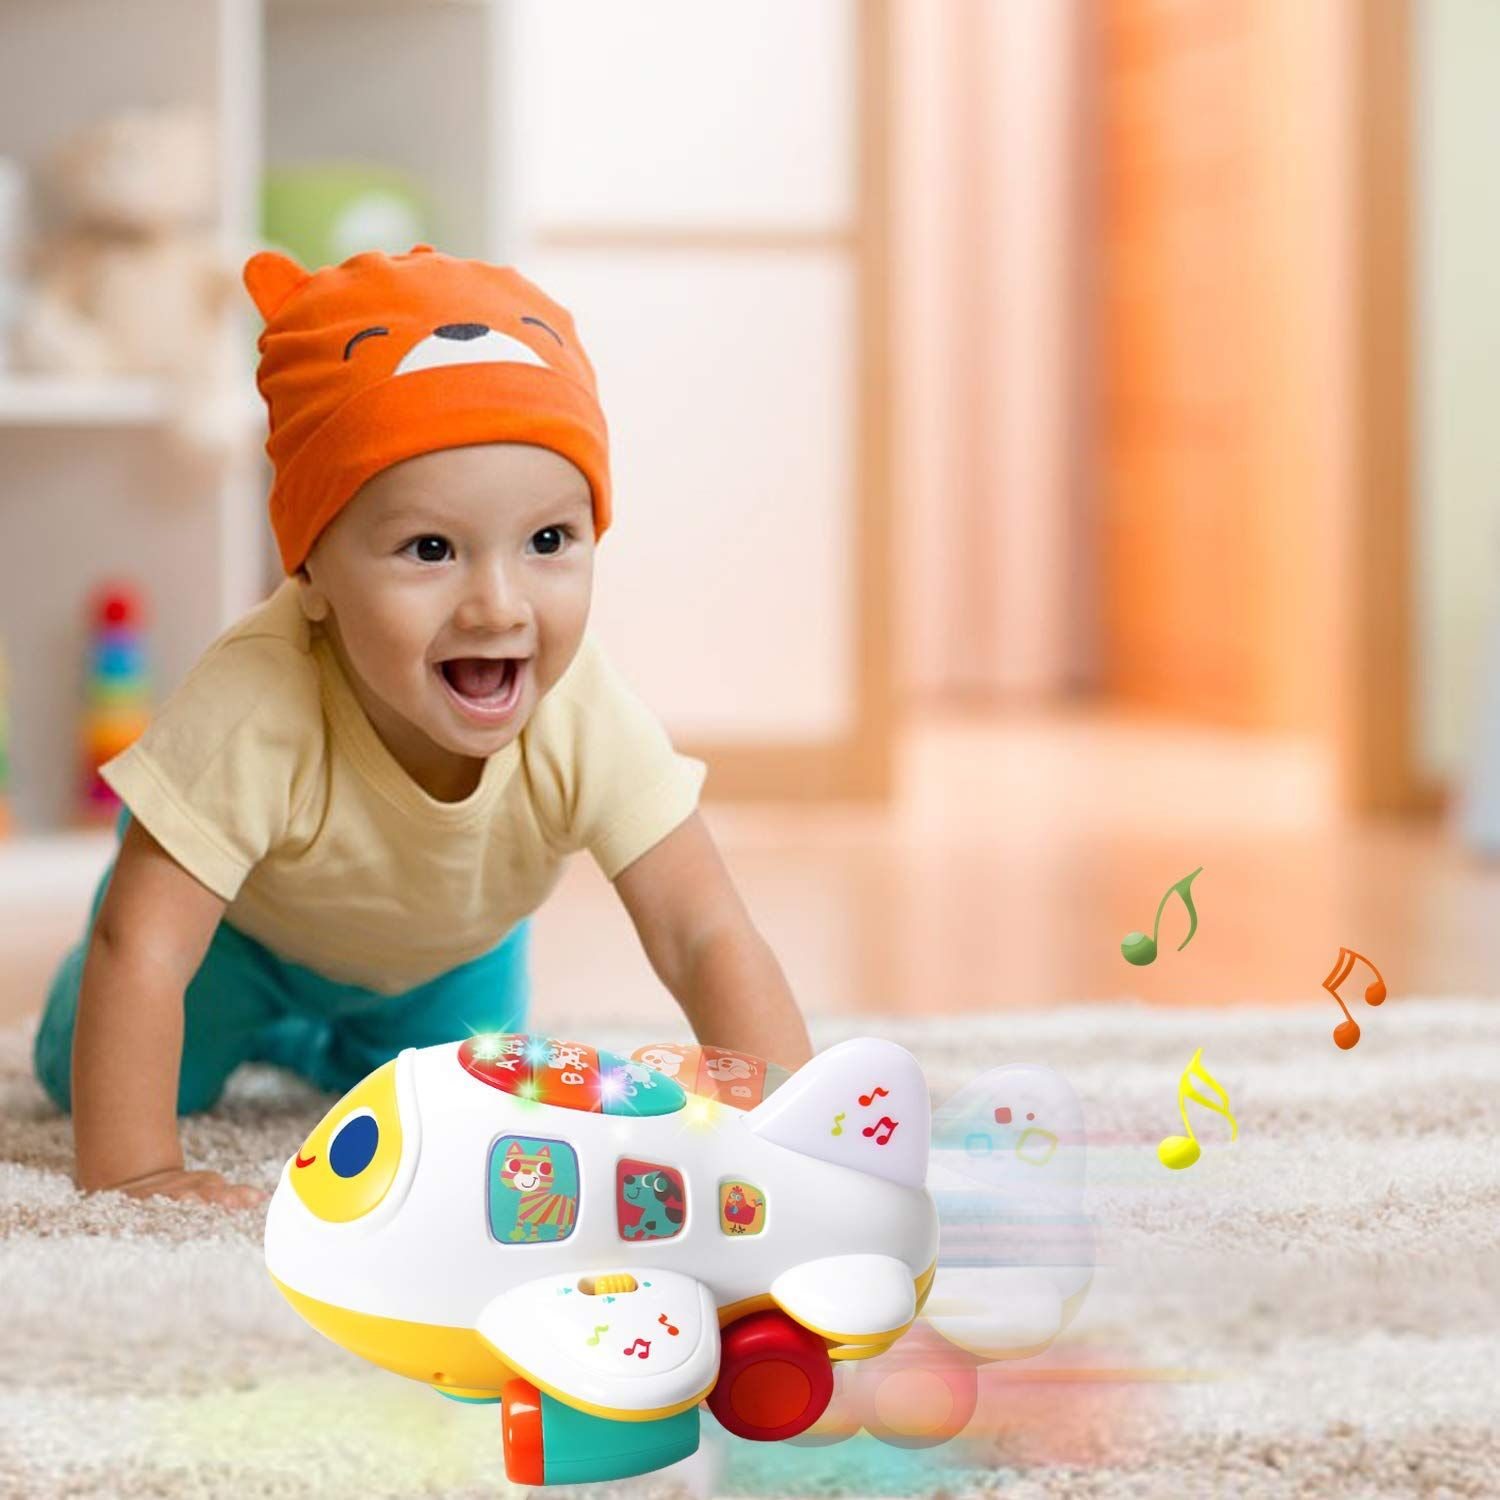 Musical Toys for Babies Toddlers Boy Girl Gifts Toddler Play Learning Activities